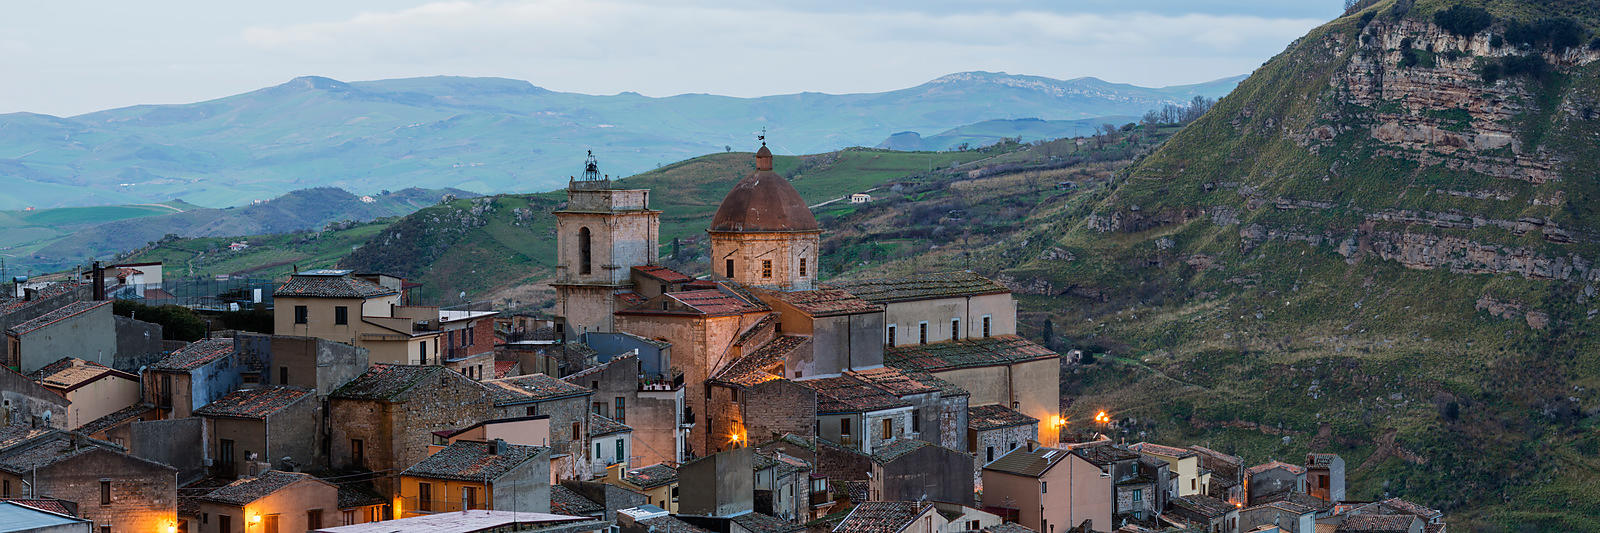 The Town and the Cathedral, or Matrice at Petralia Sottana